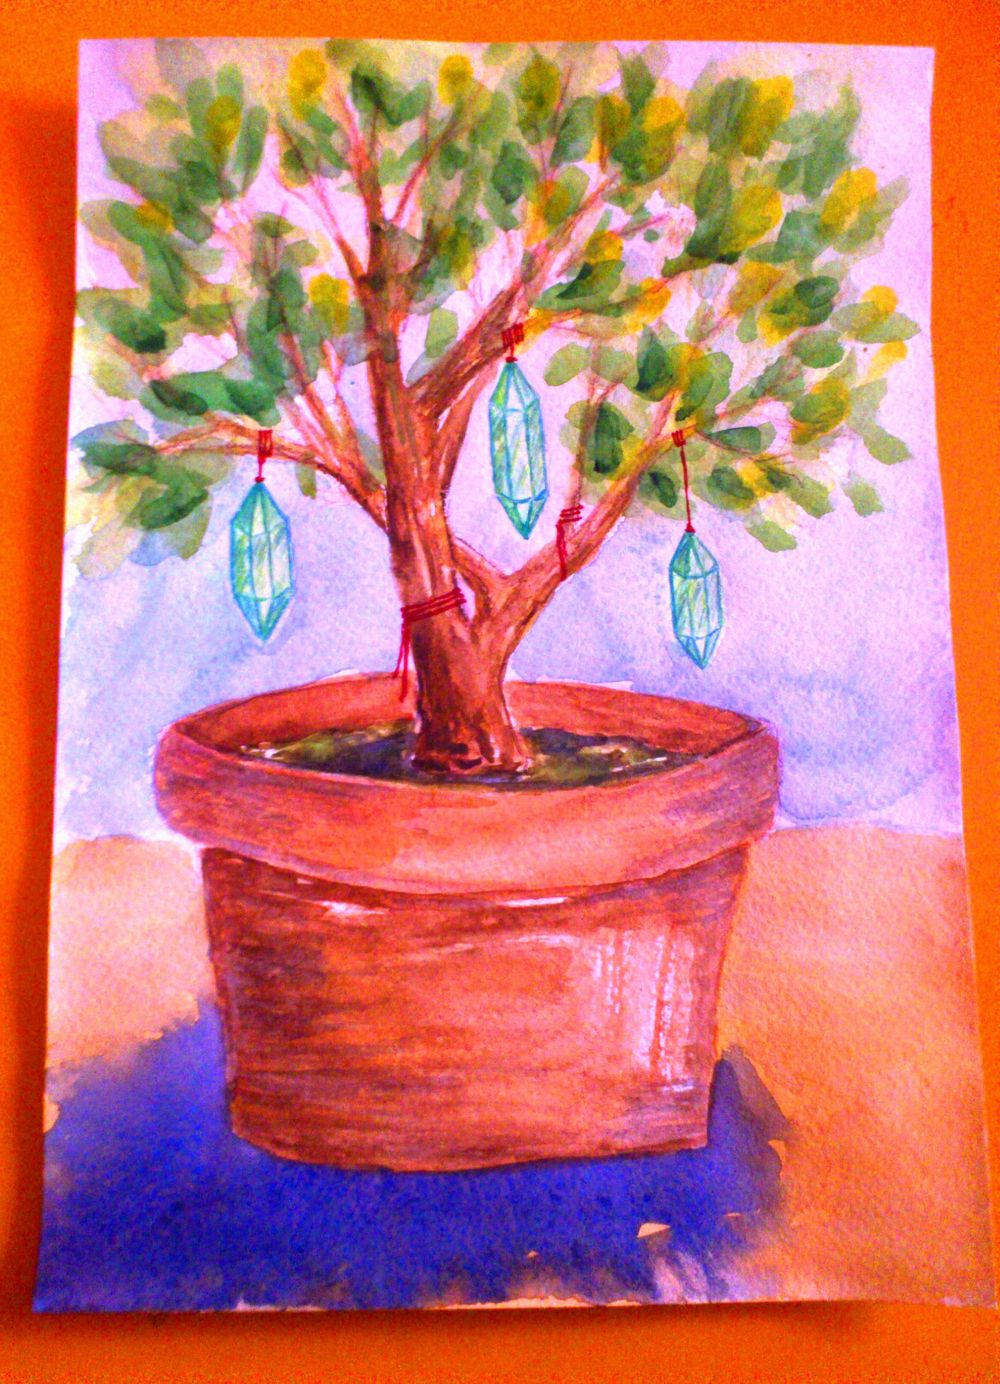 Crystals and happy tree. - image 7 - student project